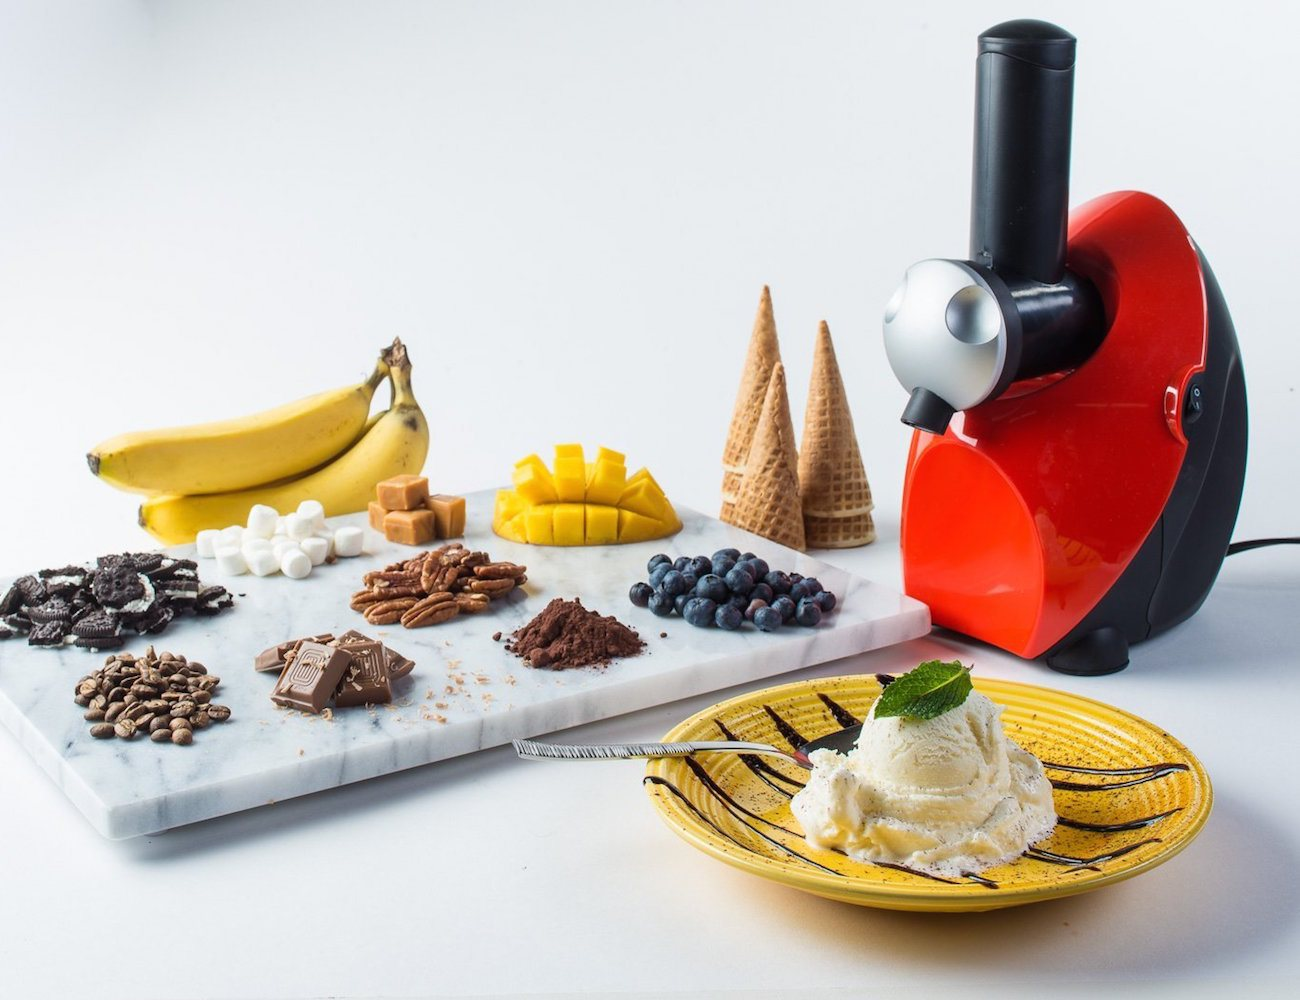 Chef's Star Frozen Yogurt & Dessert Maker